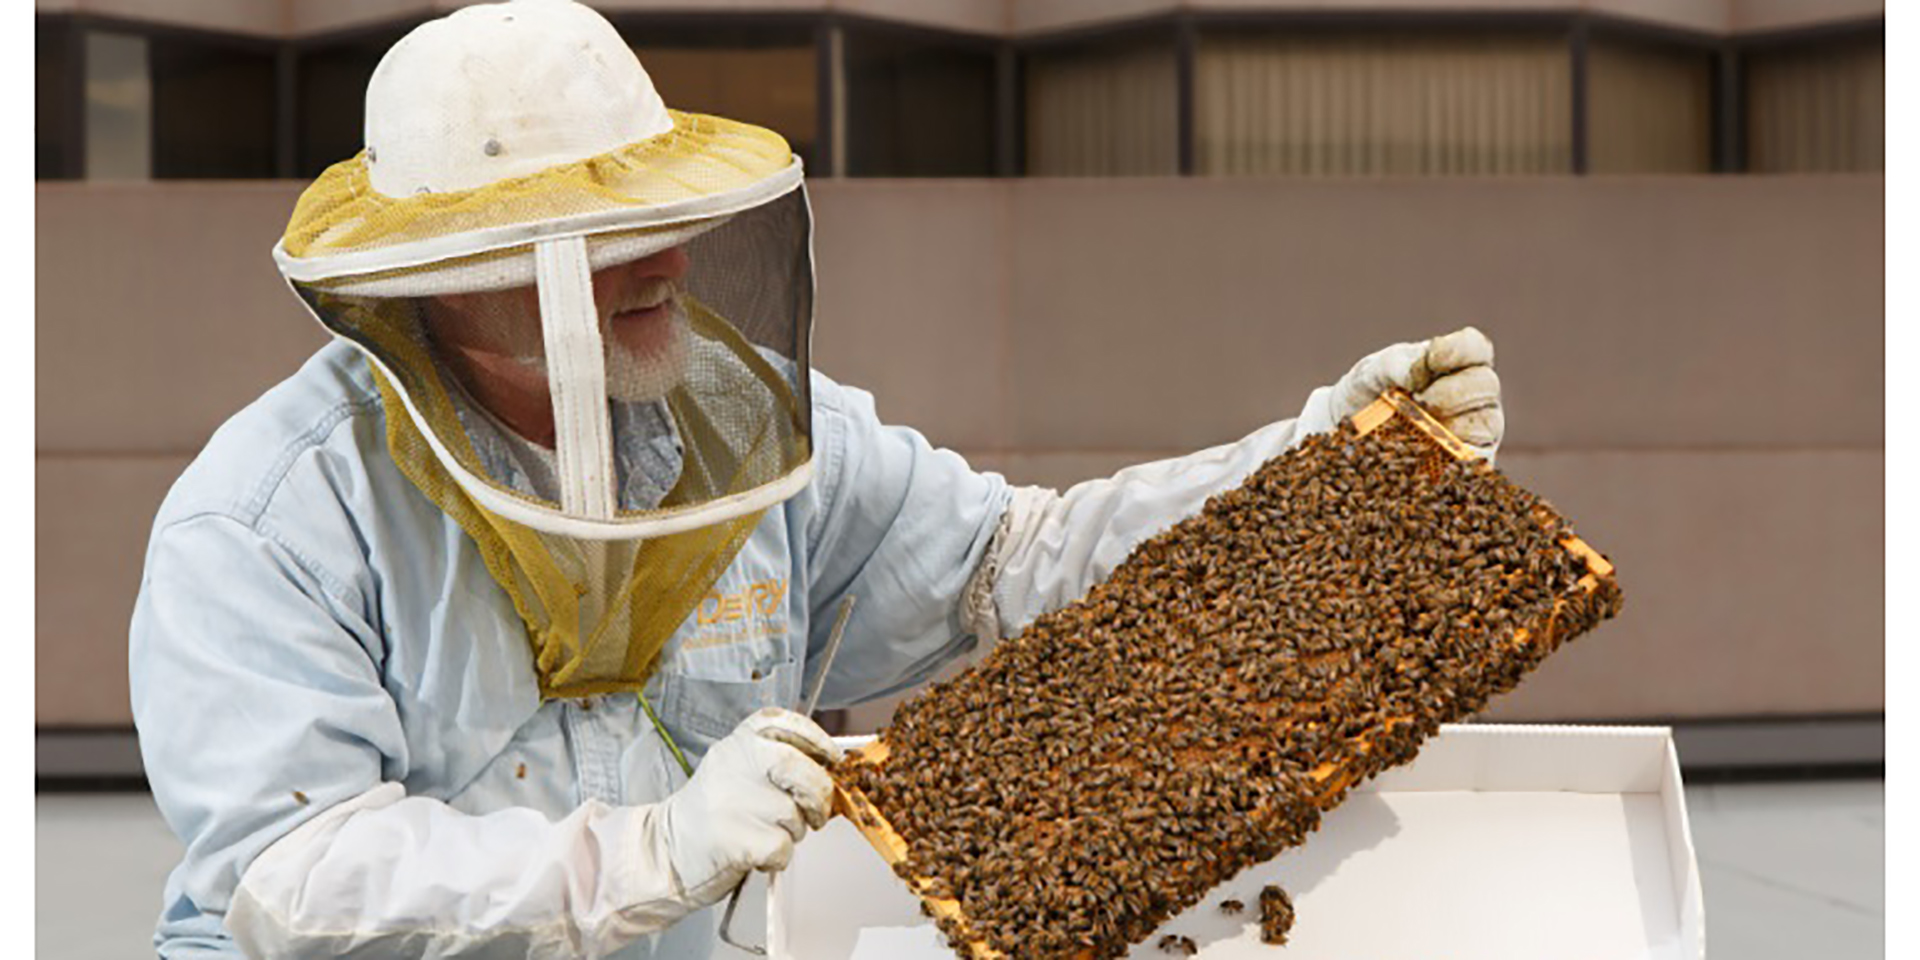 Ritz-Carlton Hotel contributes to global efforts to revive honeybee population by housing them in their properties